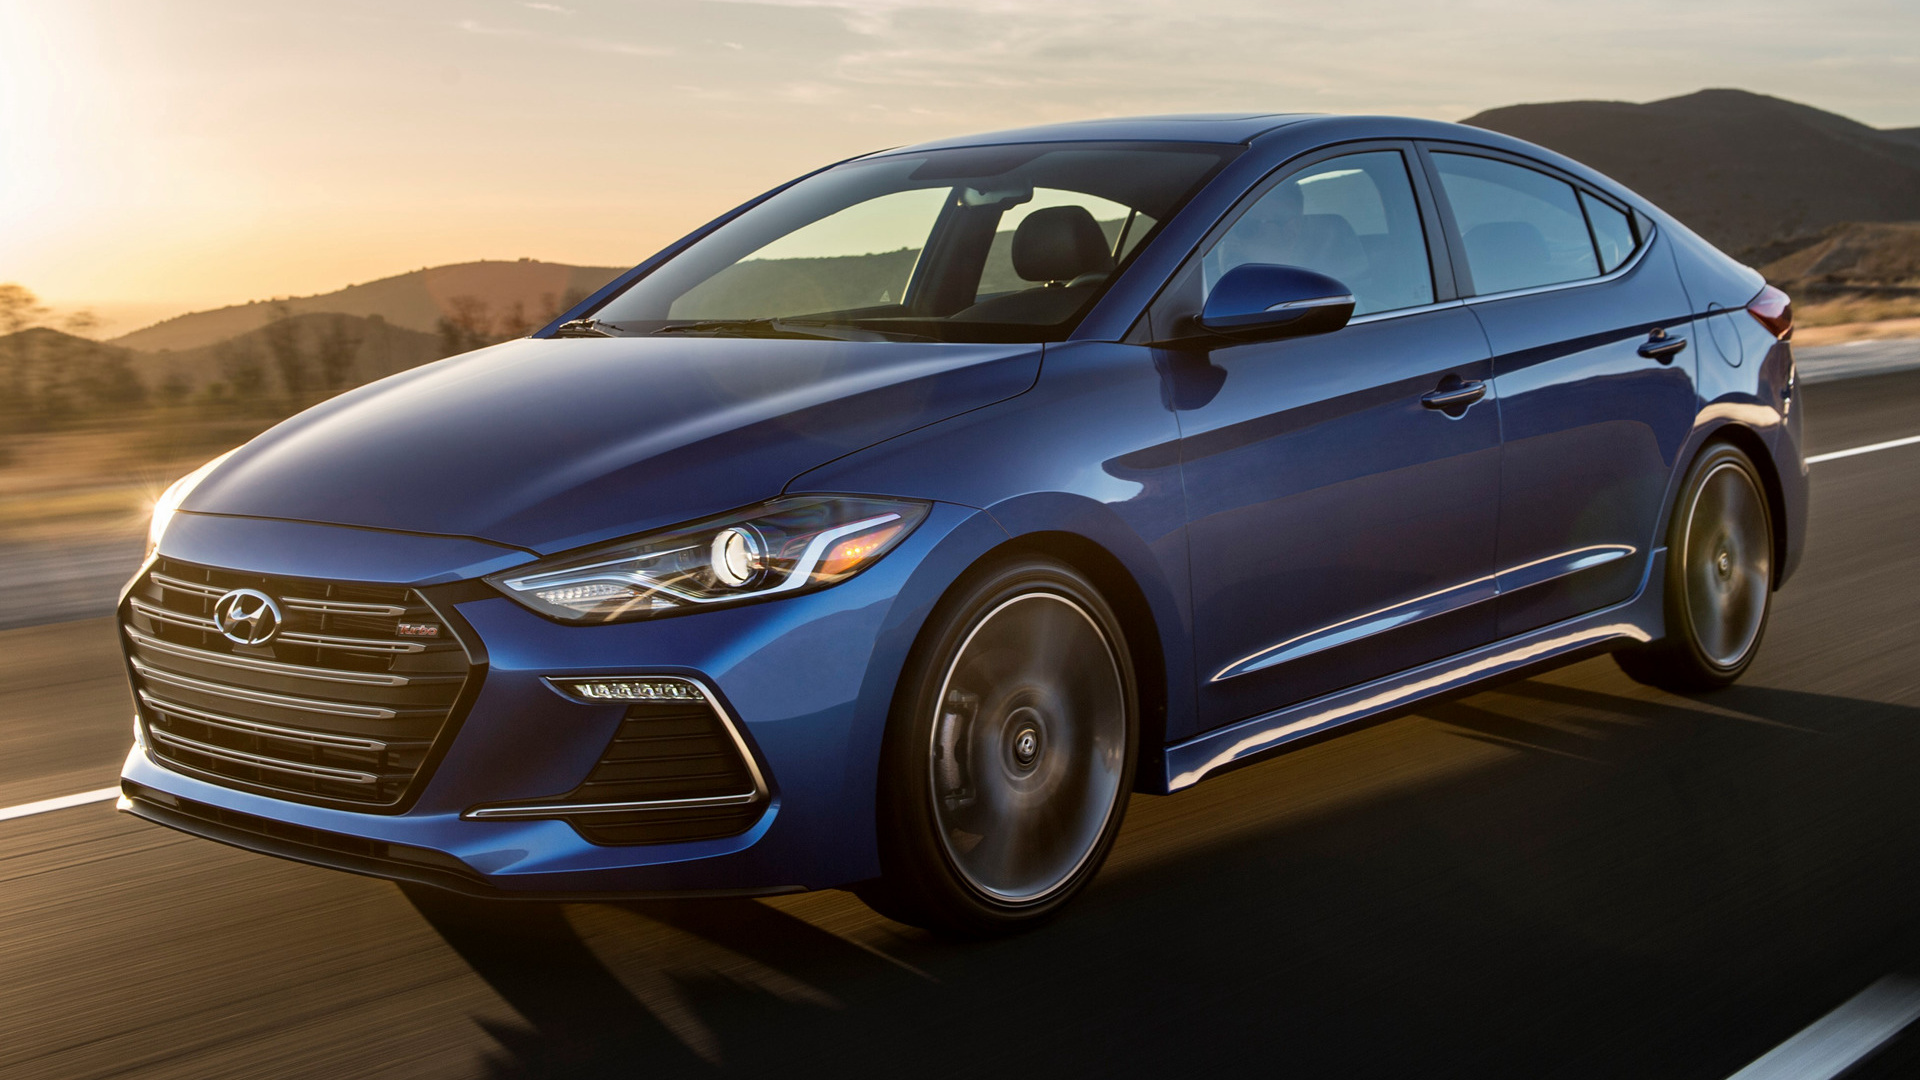 2017 Dodge Ram >> 2017 Hyundai Elantra Sport (US) - Wallpapers and HD Images ...